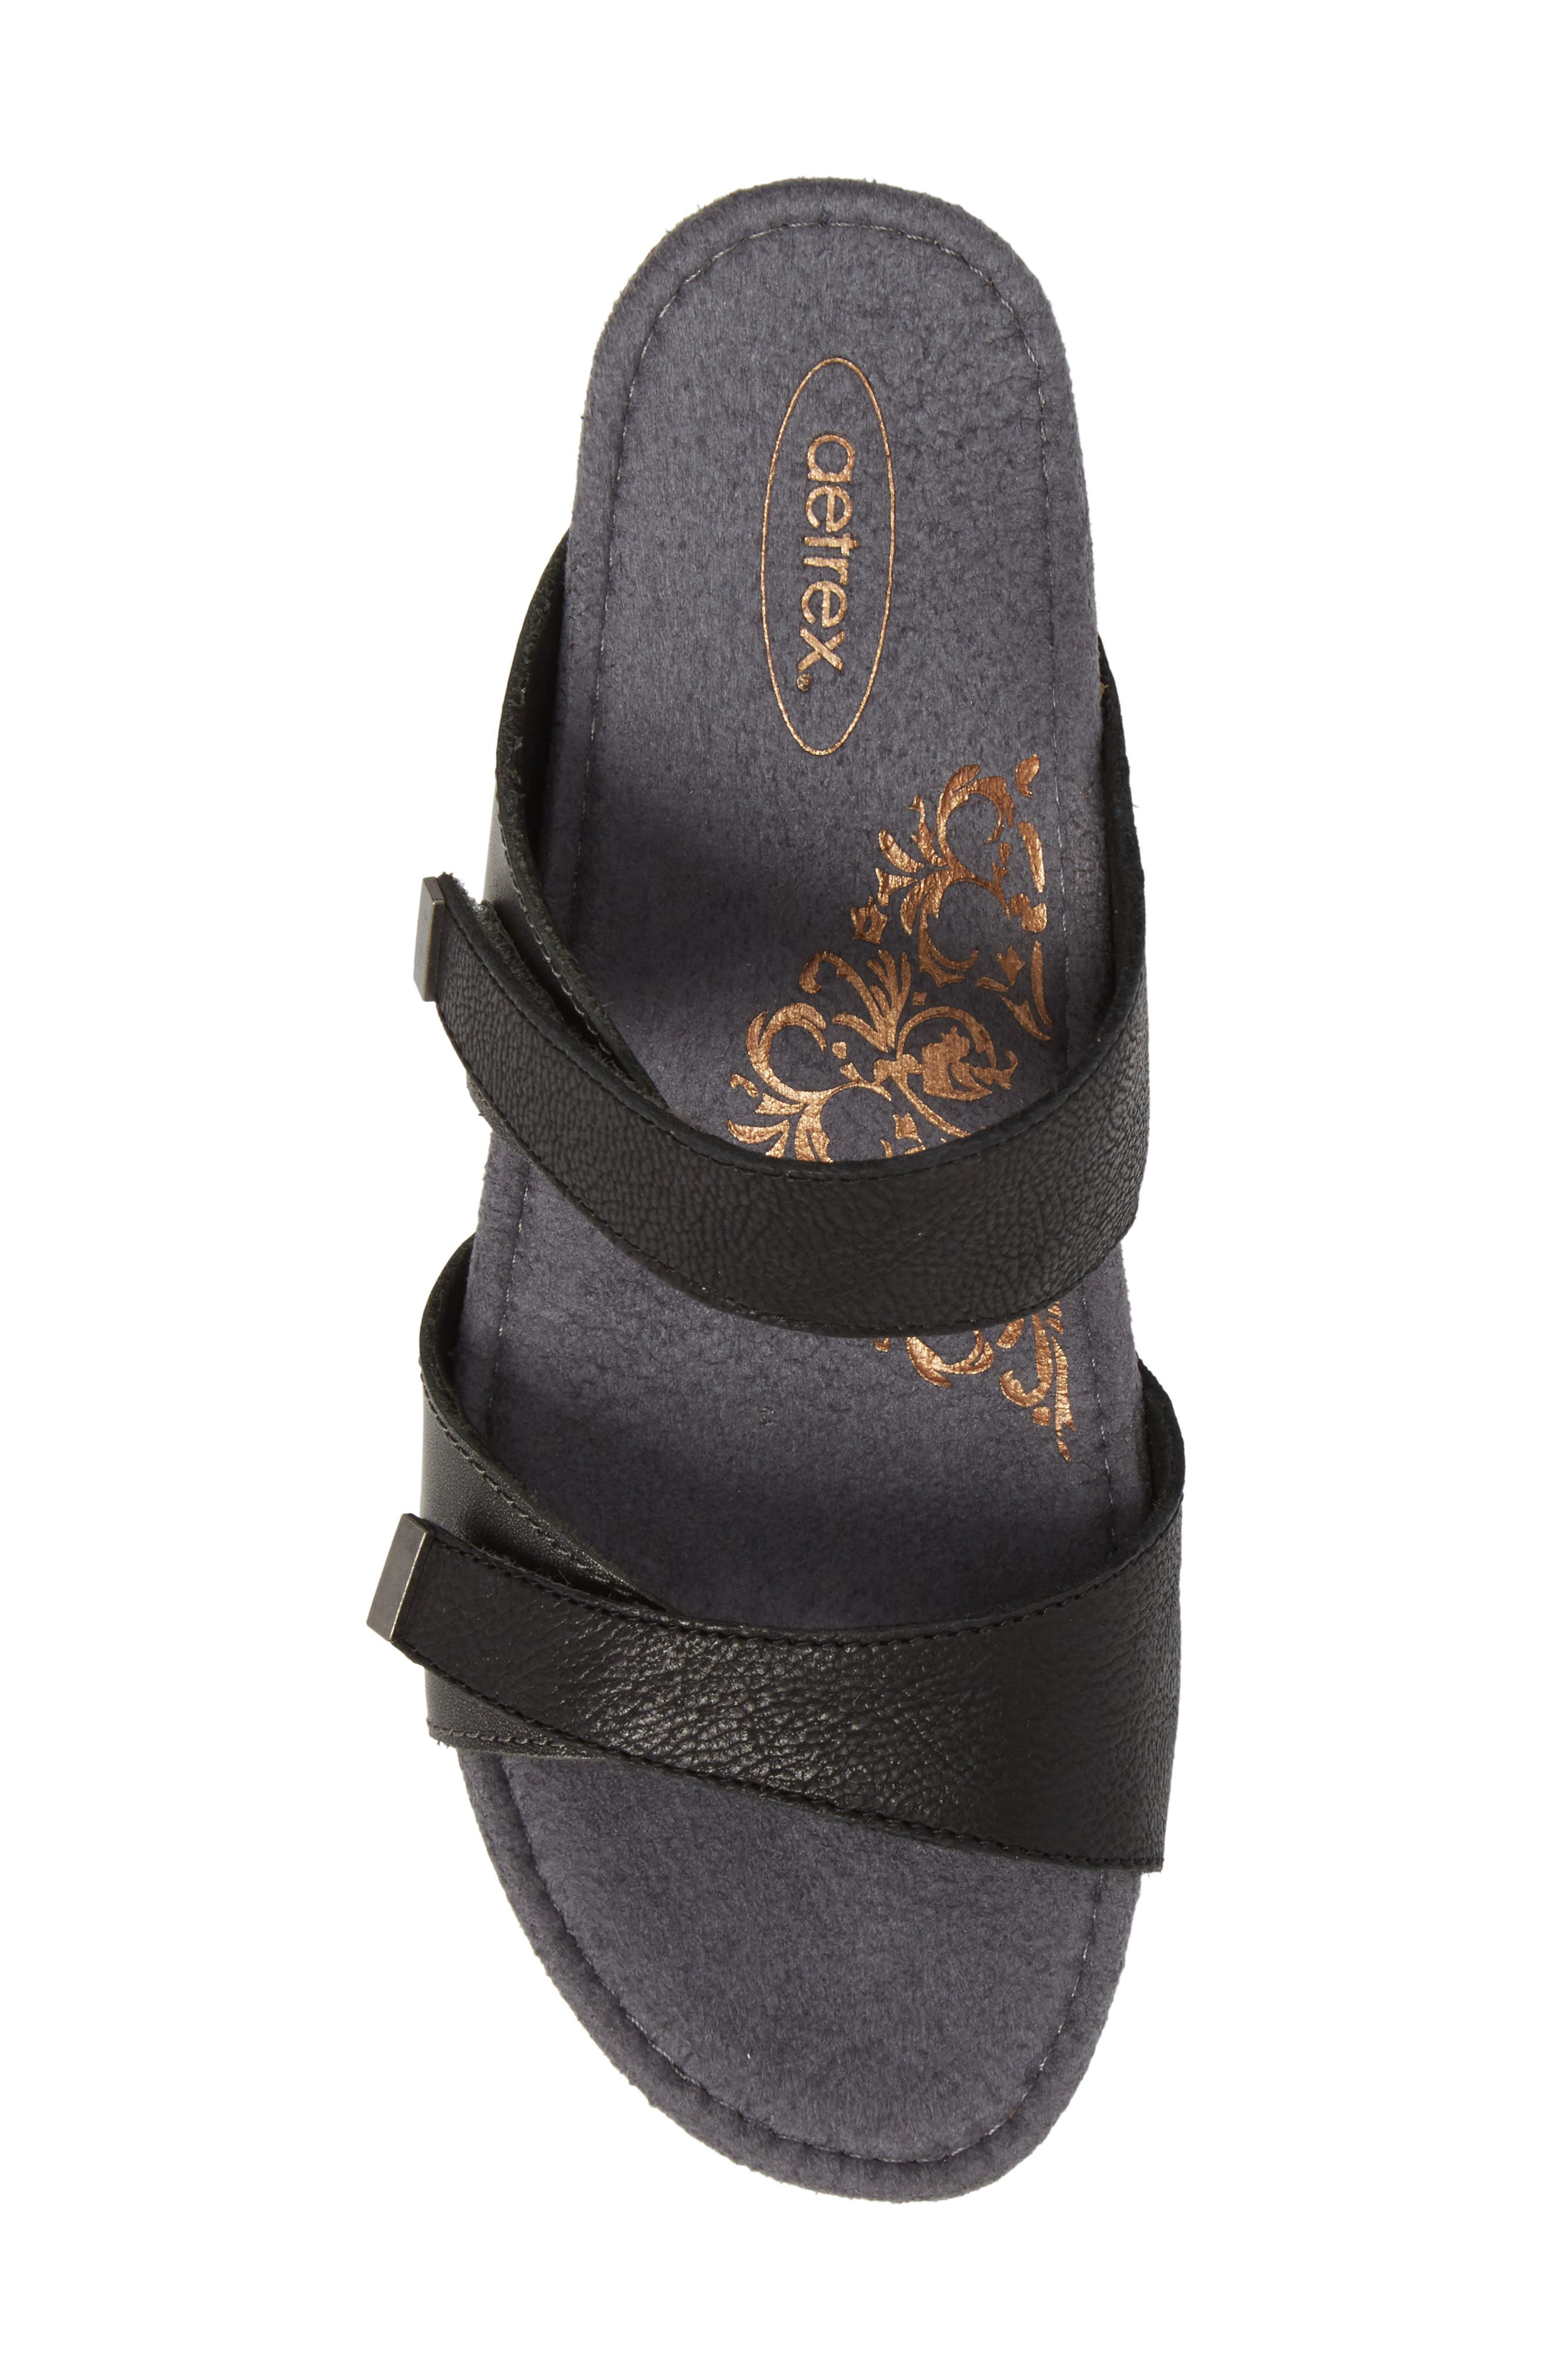 Chantel Wedge Sandal,                             Alternate thumbnail 5, color,                             Black Leather